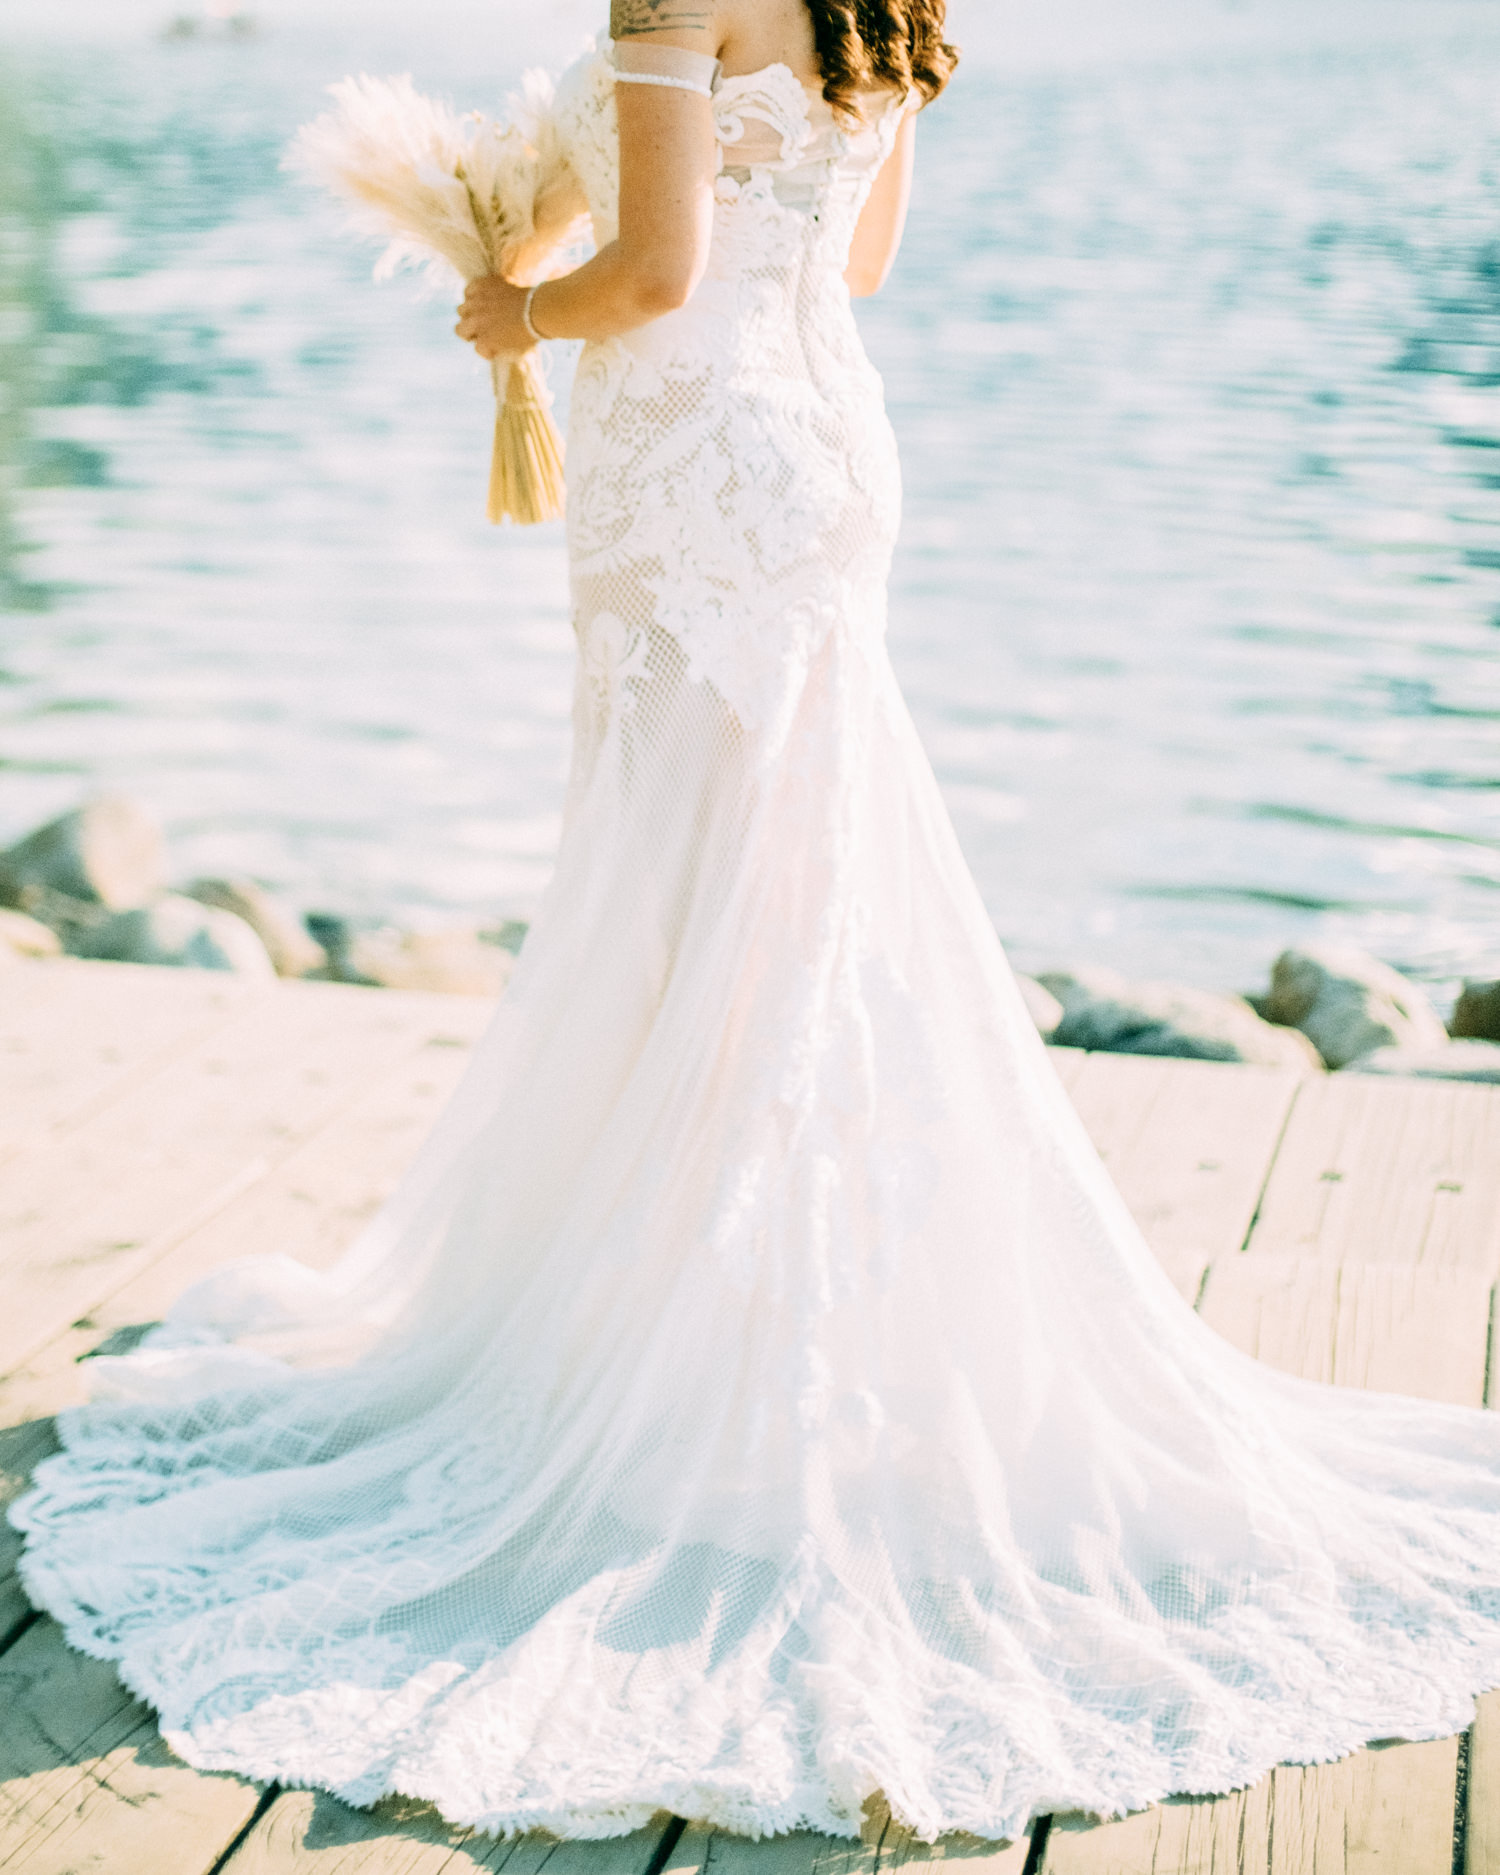 Stunning lace dress for elopement